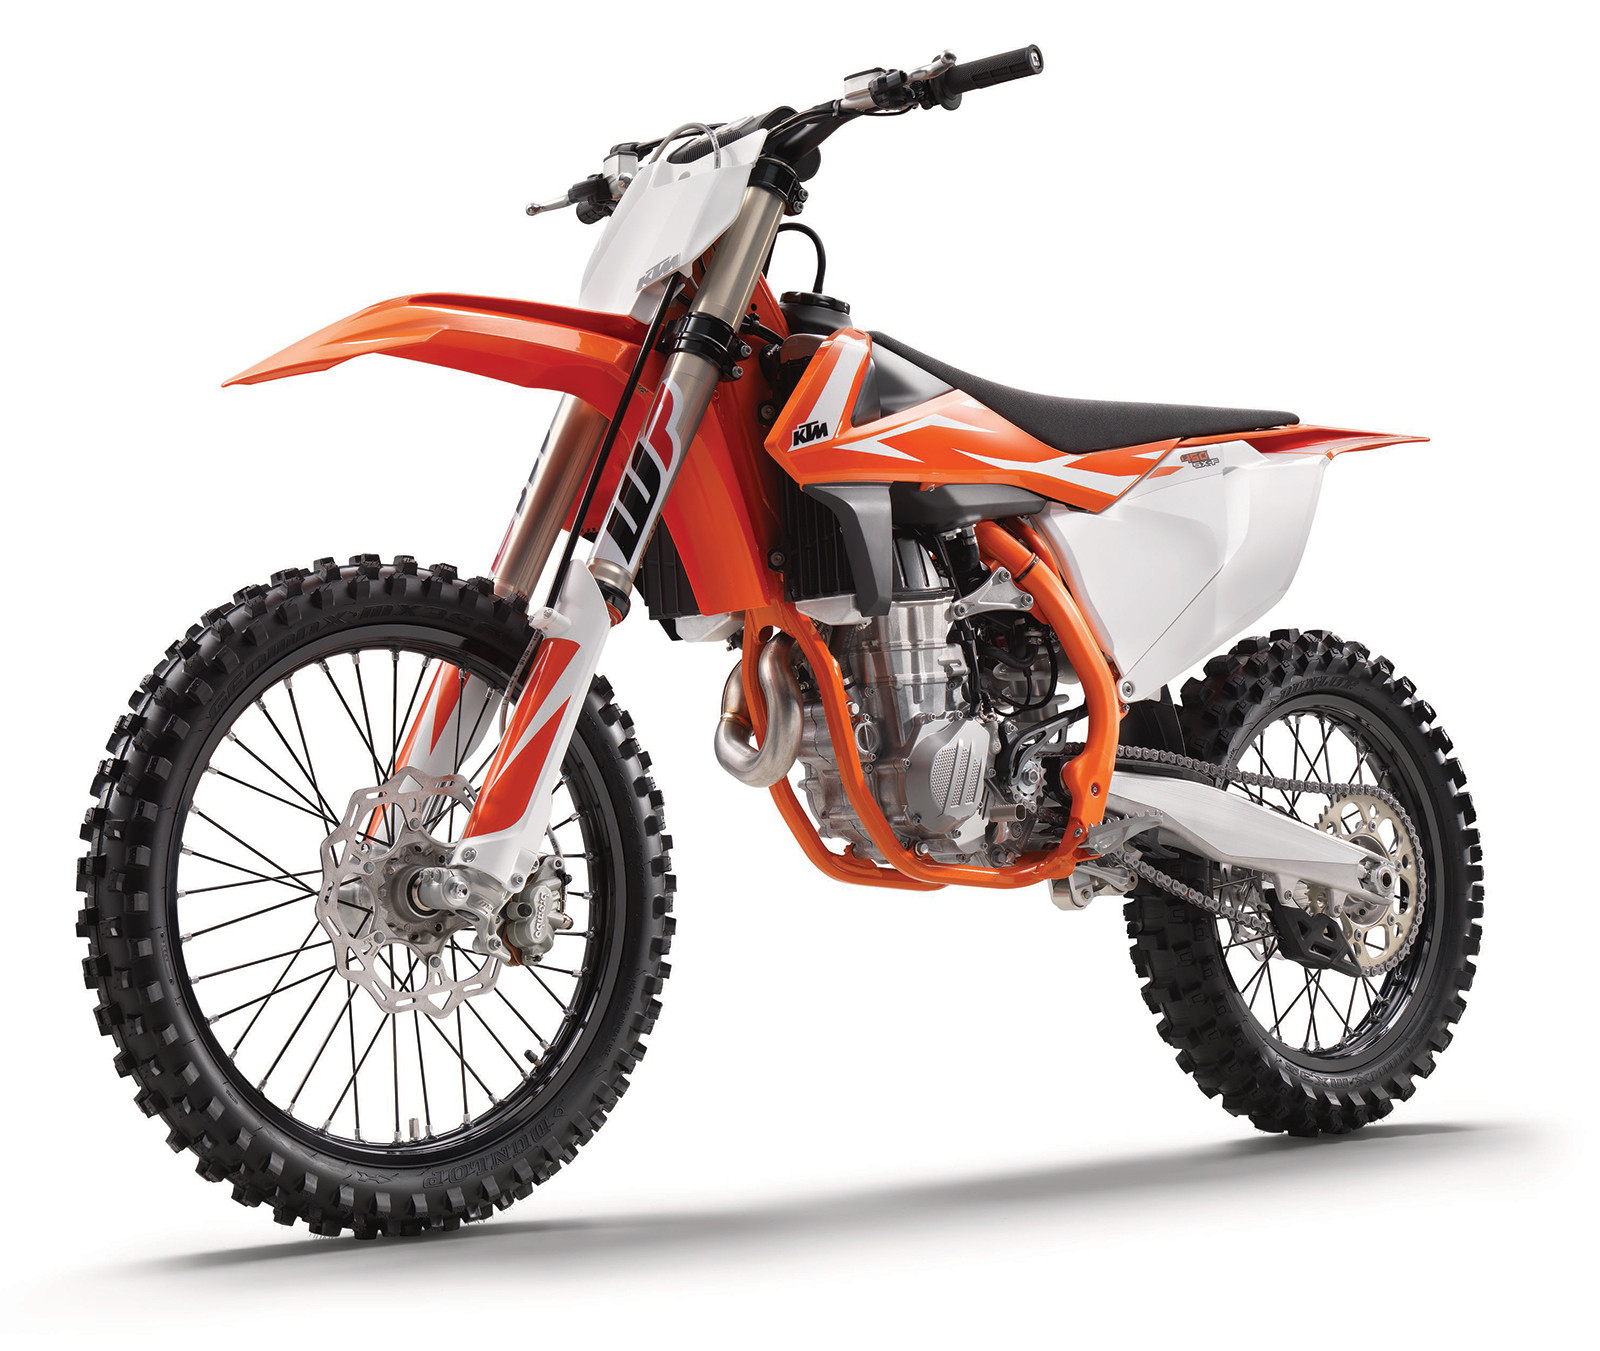 2018 ktm 65 sx.  ktm 2018 ktm 450 sxf throughout ktm 65 sx s